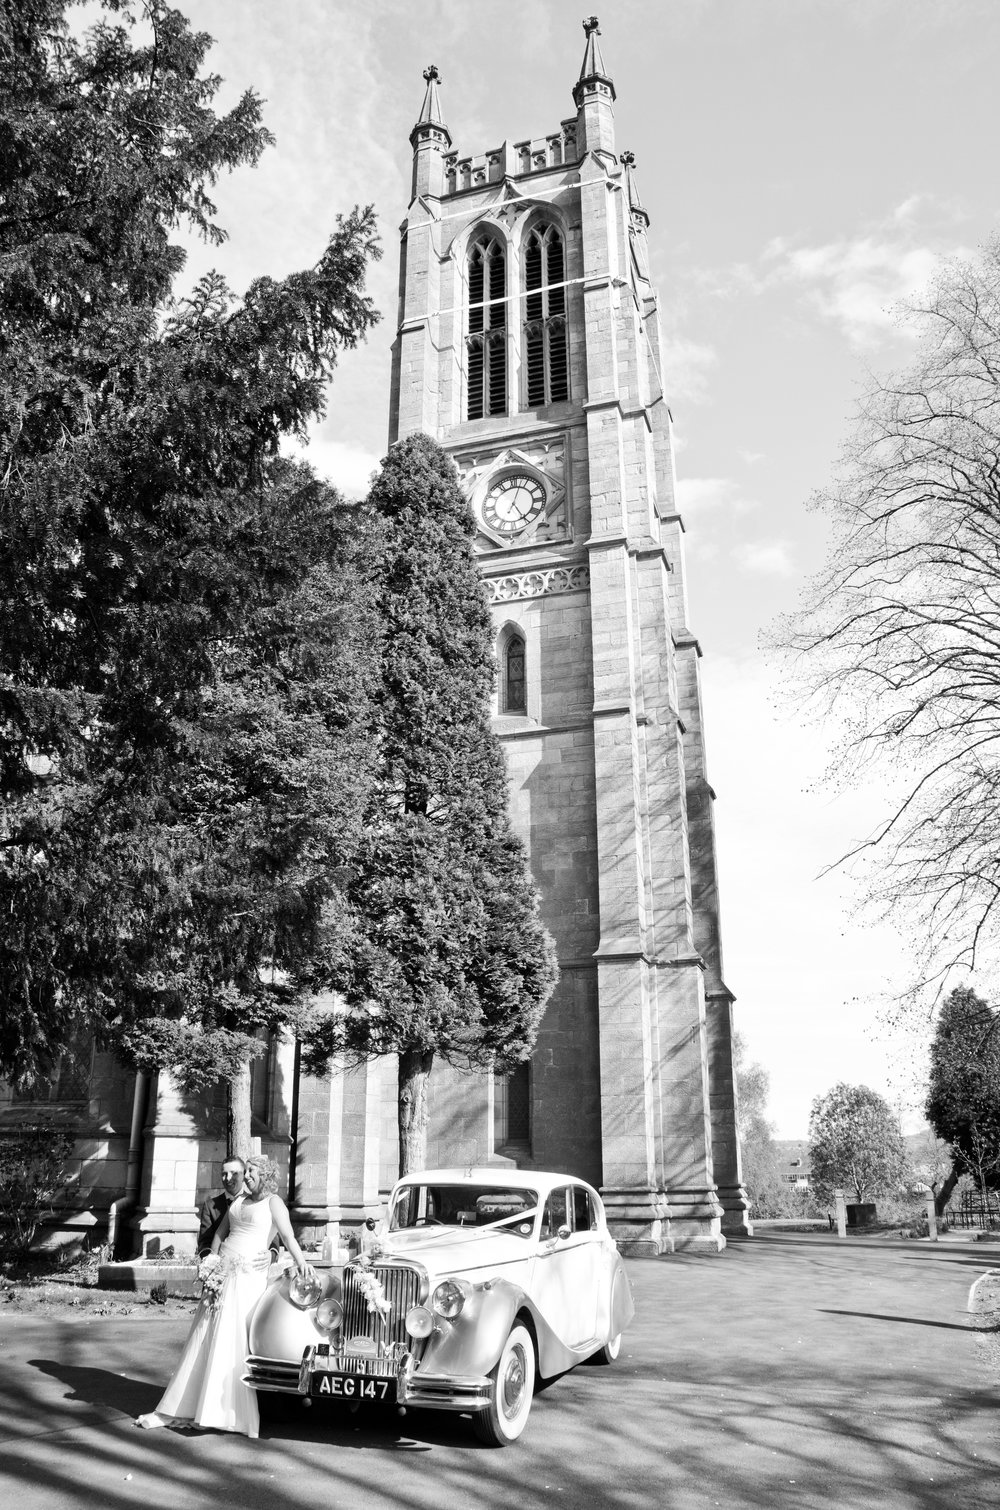 Bride and Groom by wedding car Holy Trinity Church Wordsley Stourbridge